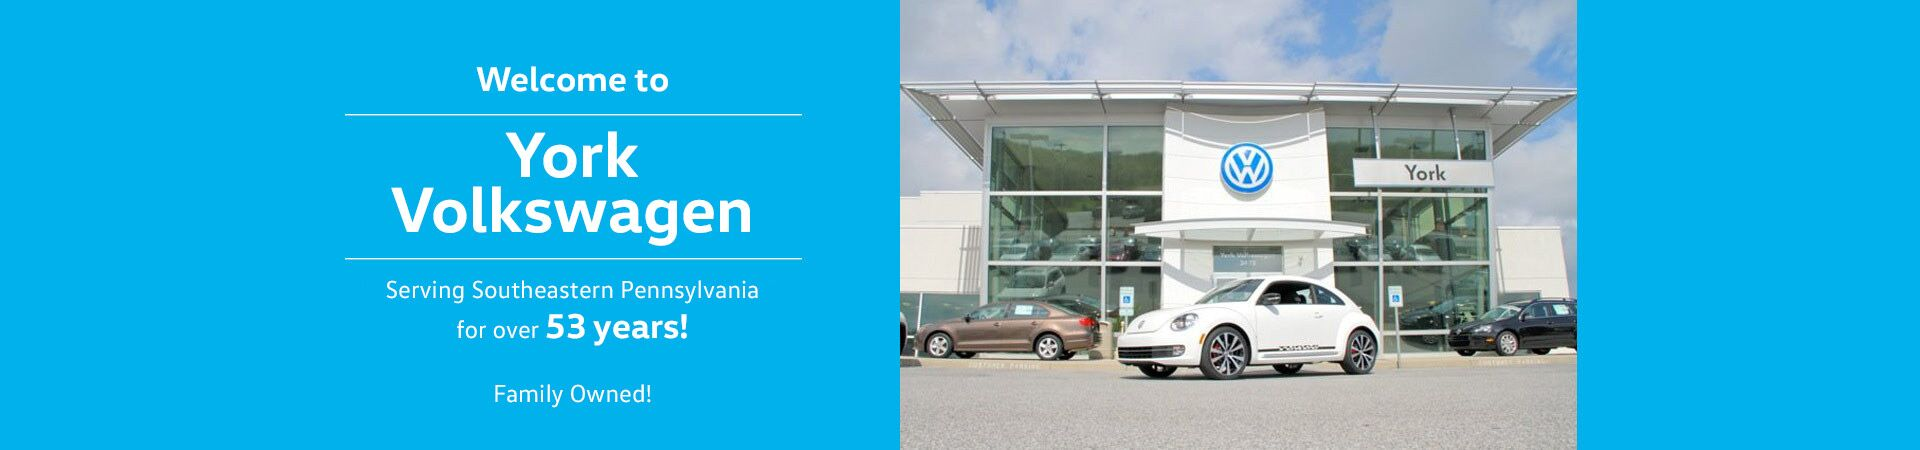 Welcome to York Volkswagen